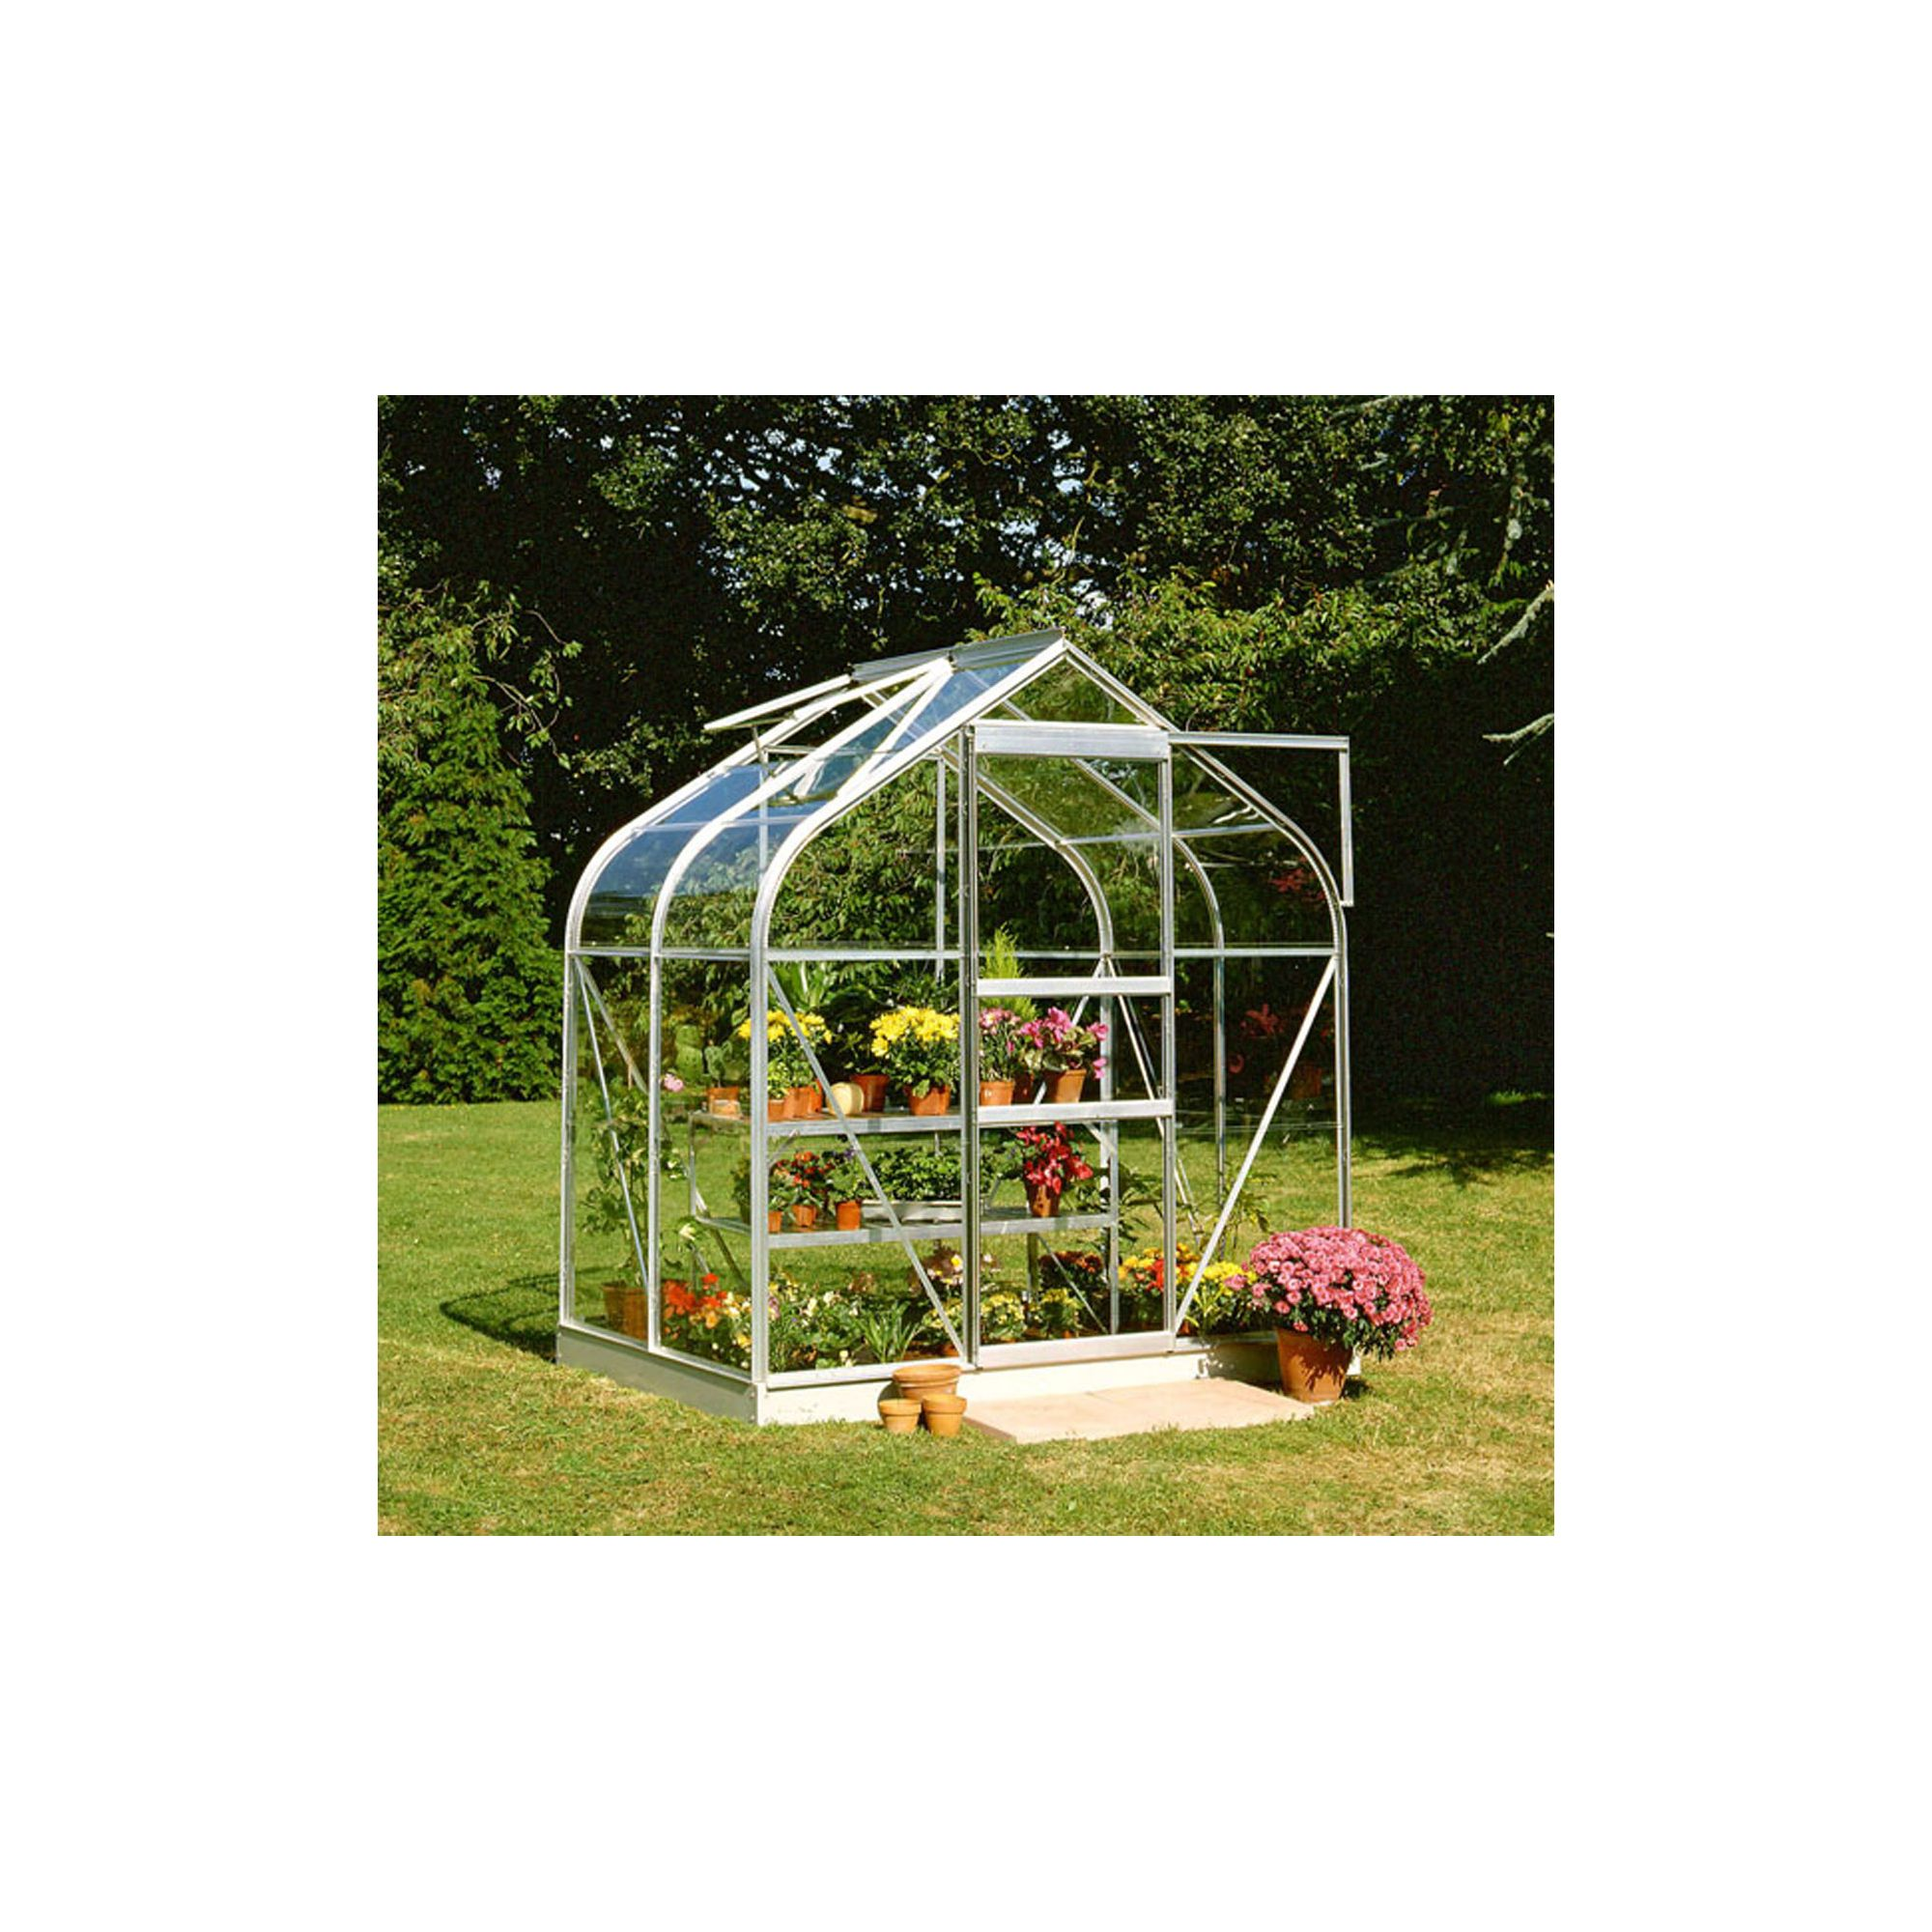 Halls 4x6 Curved Aluminium Greenhouse + Base - Toughened Glass at Tesco Direct